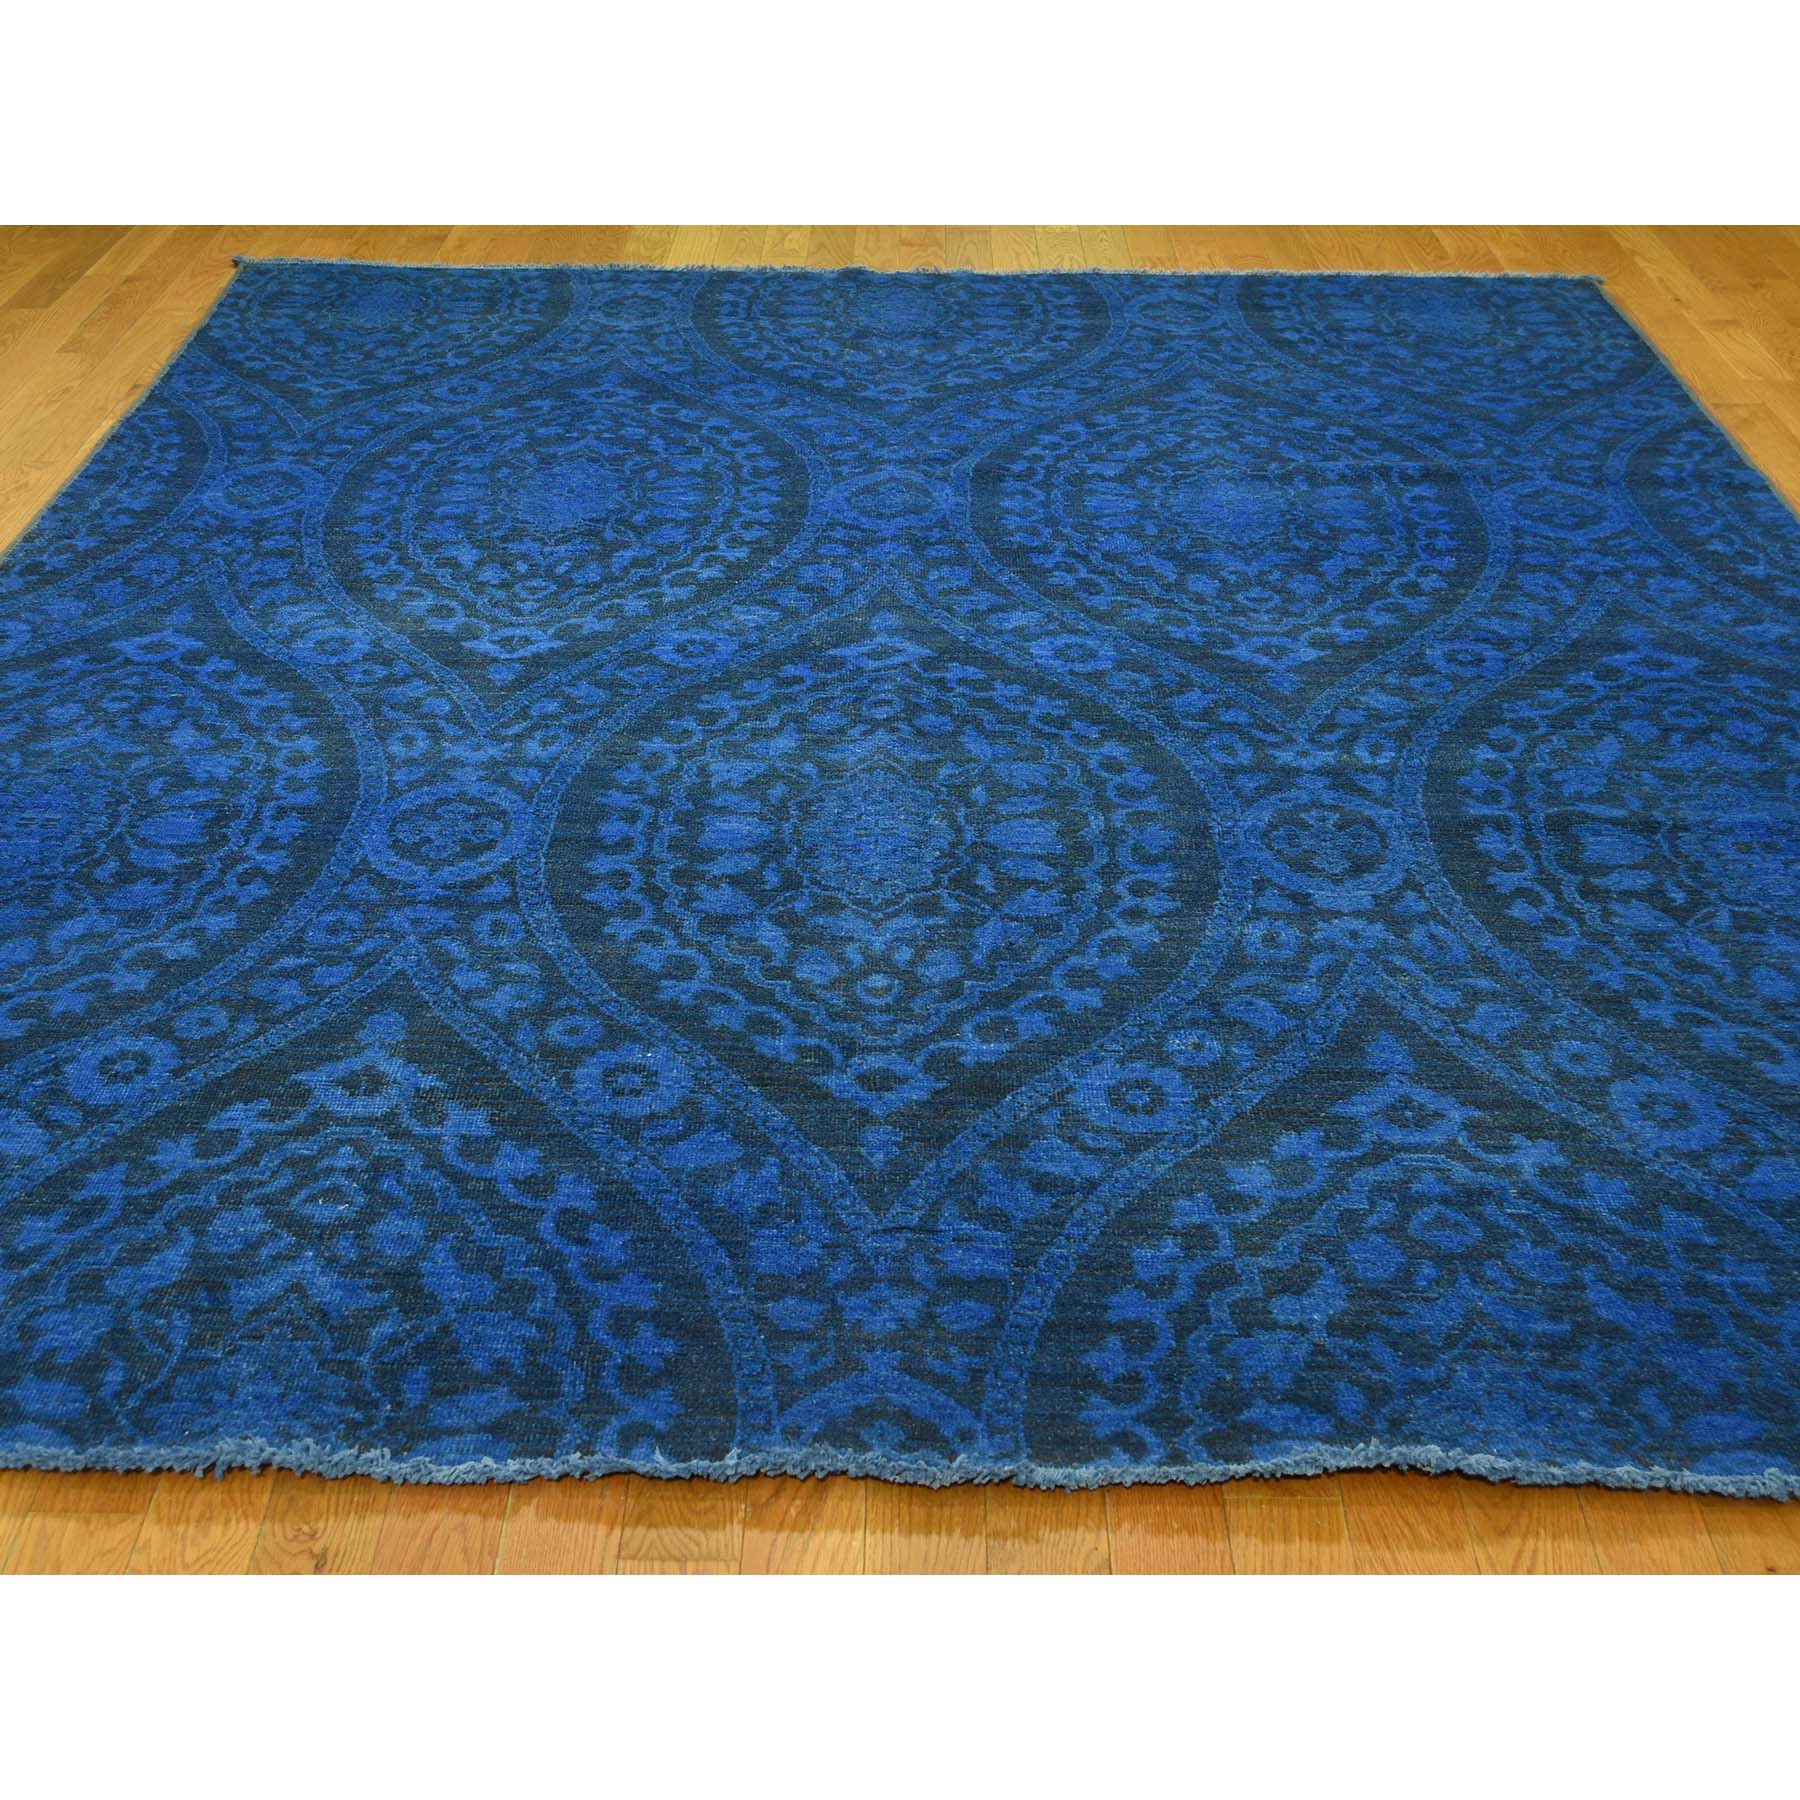 8-x10- Overdyed With Large Paisley Design Hand-Knotted Oriental Rug